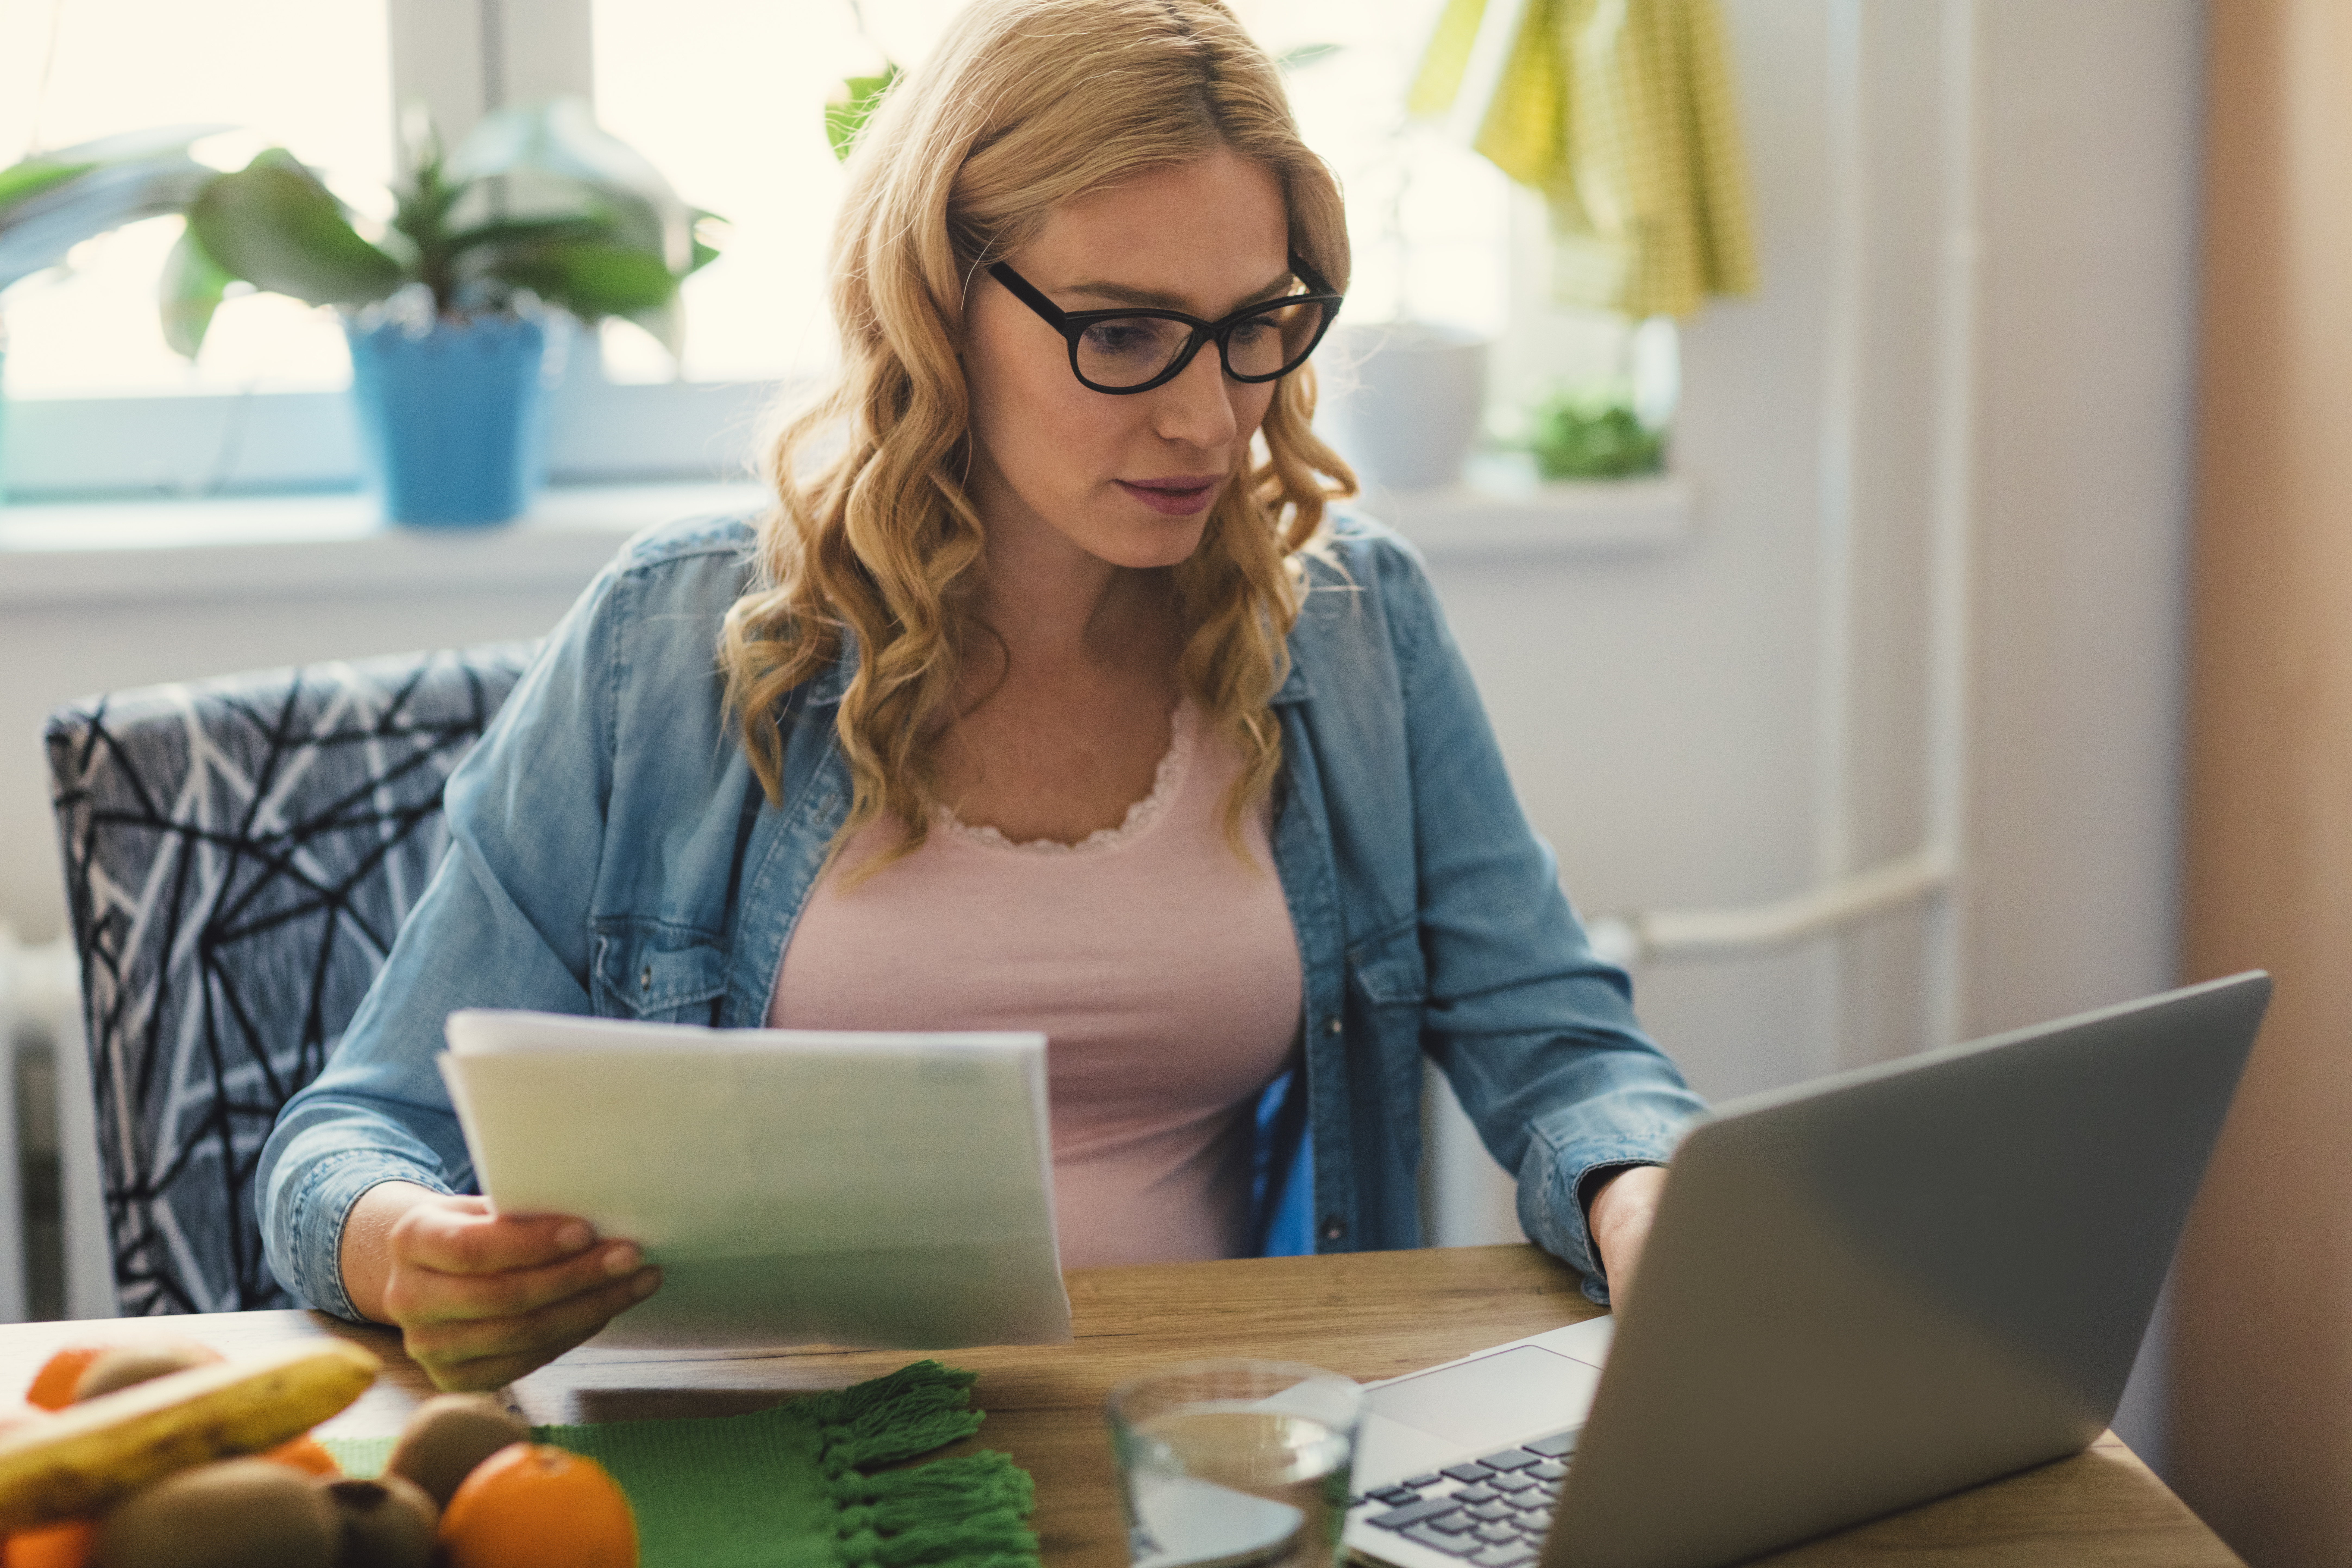 First Time Home Buyer Loans for People with Bad Credit